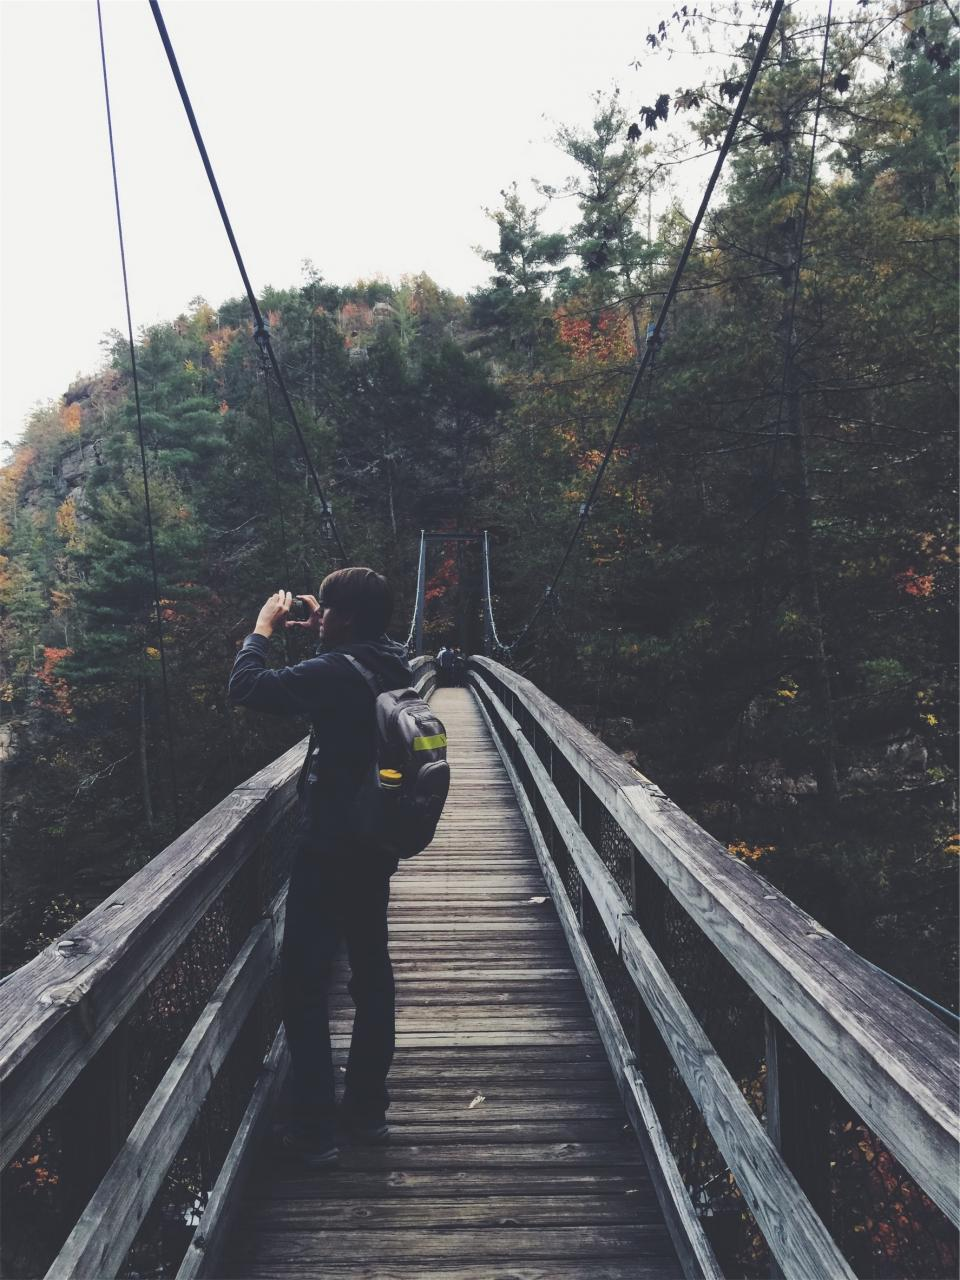 wood bridge nature forest woods guy photographer photograph camera backpack knapsack hiking trail